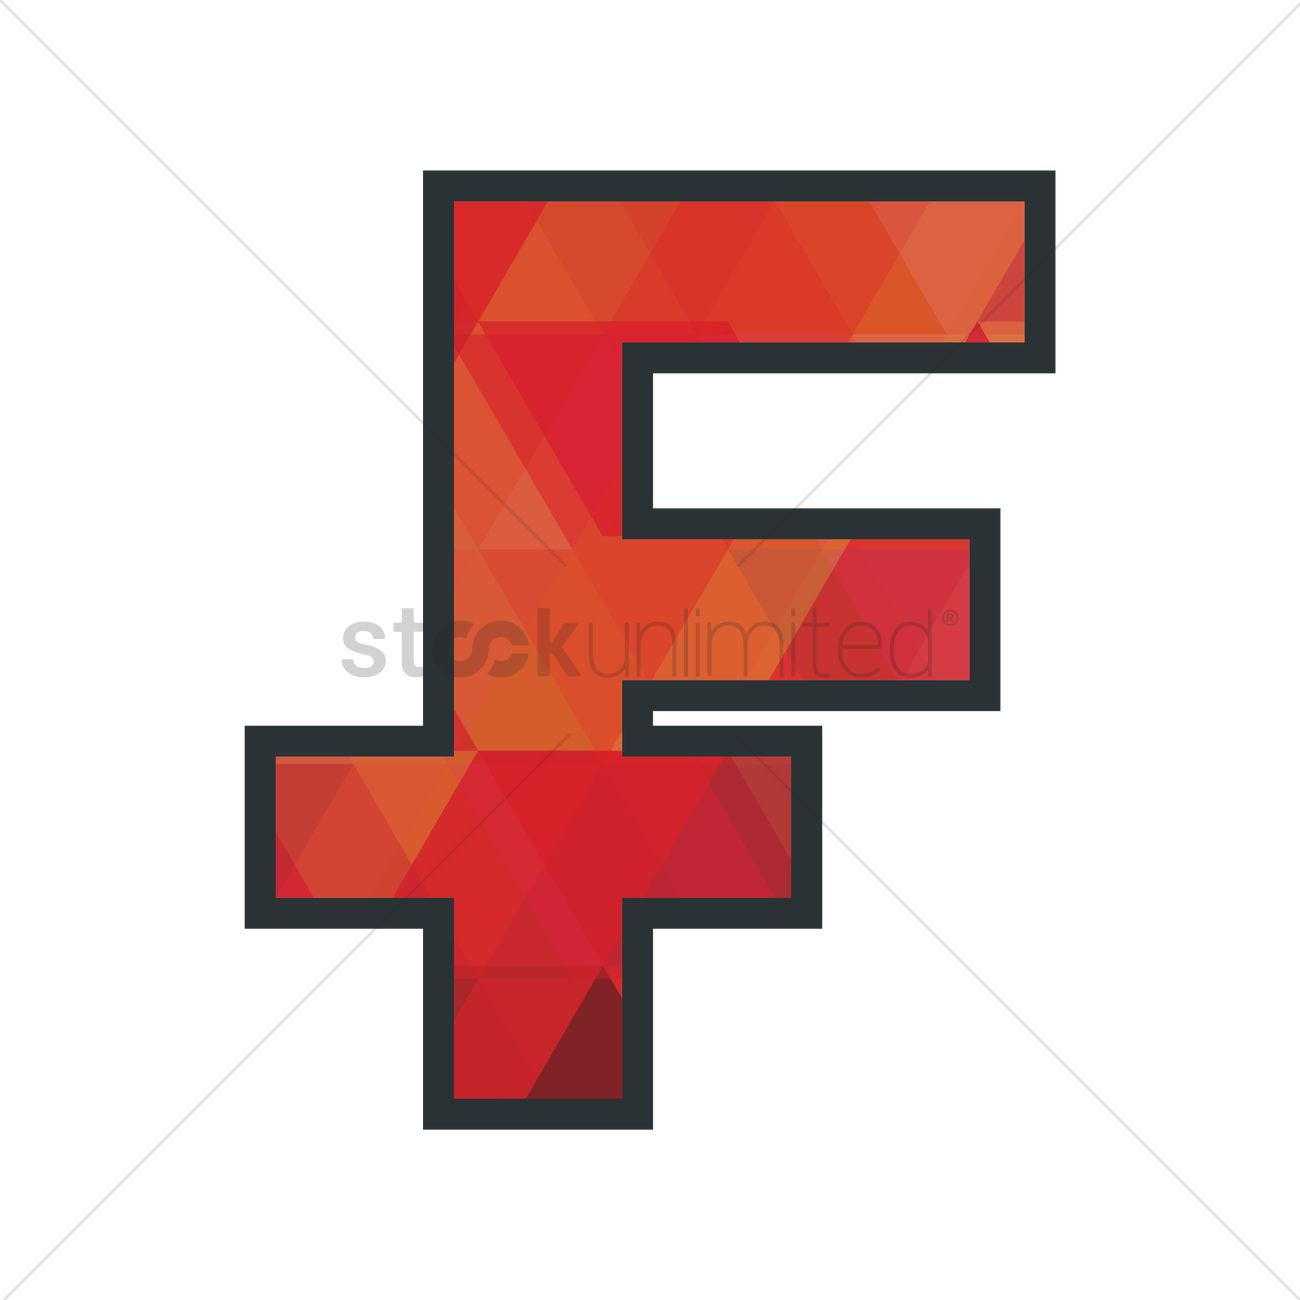 Swiss franc currency symbol vector image 2034526 stockunlimited swiss franc currency symbol vector graphic biocorpaavc Images